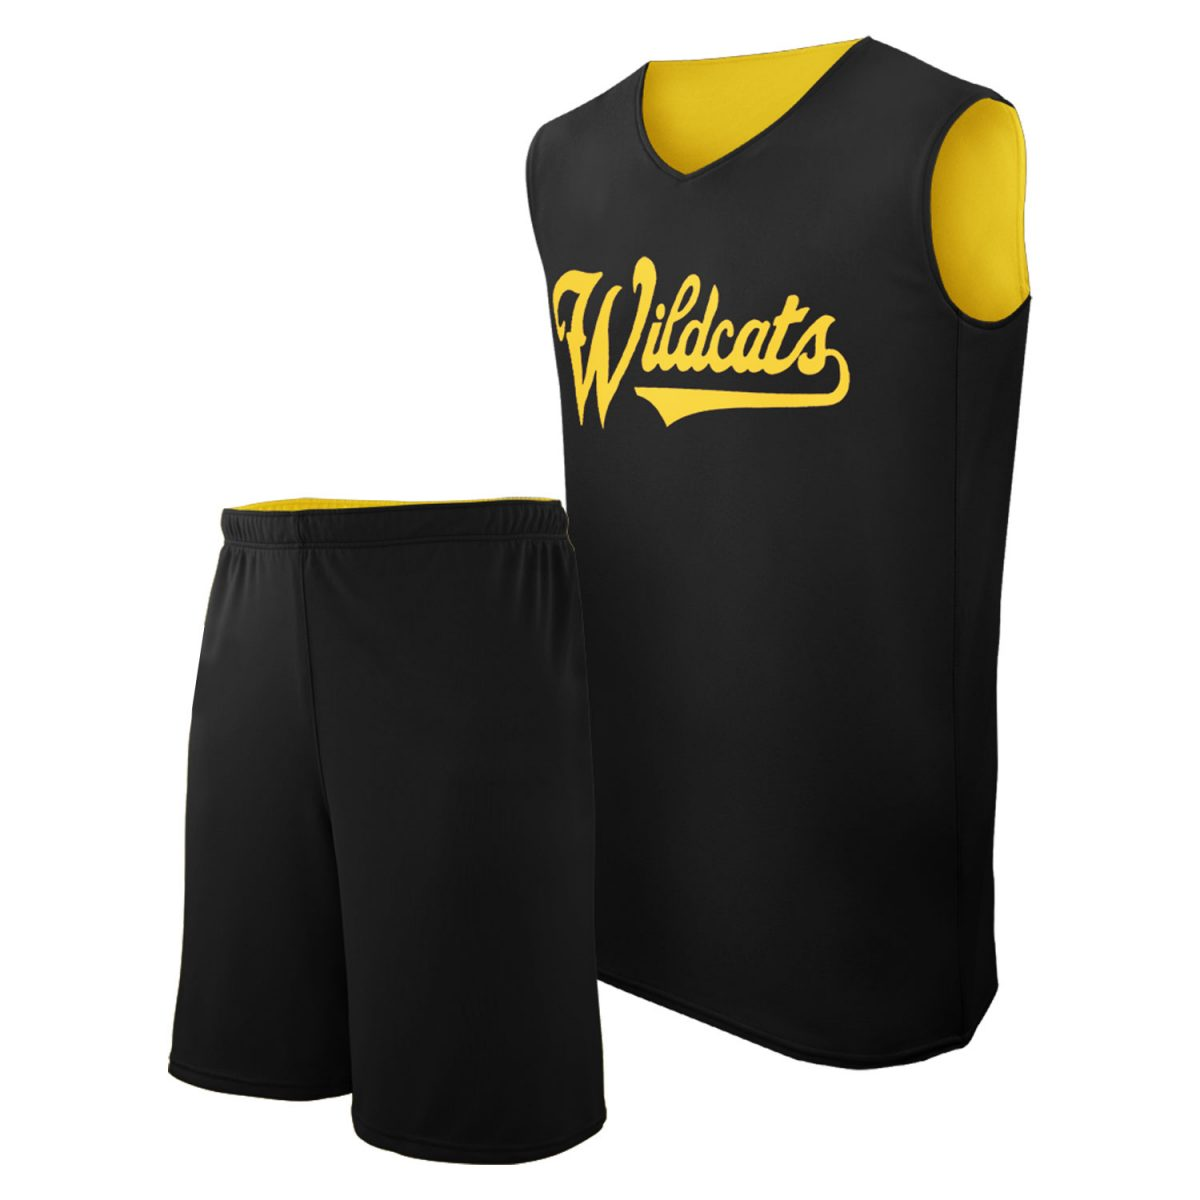 Boys Basketball Uniforms Manufacturers in Siliguri